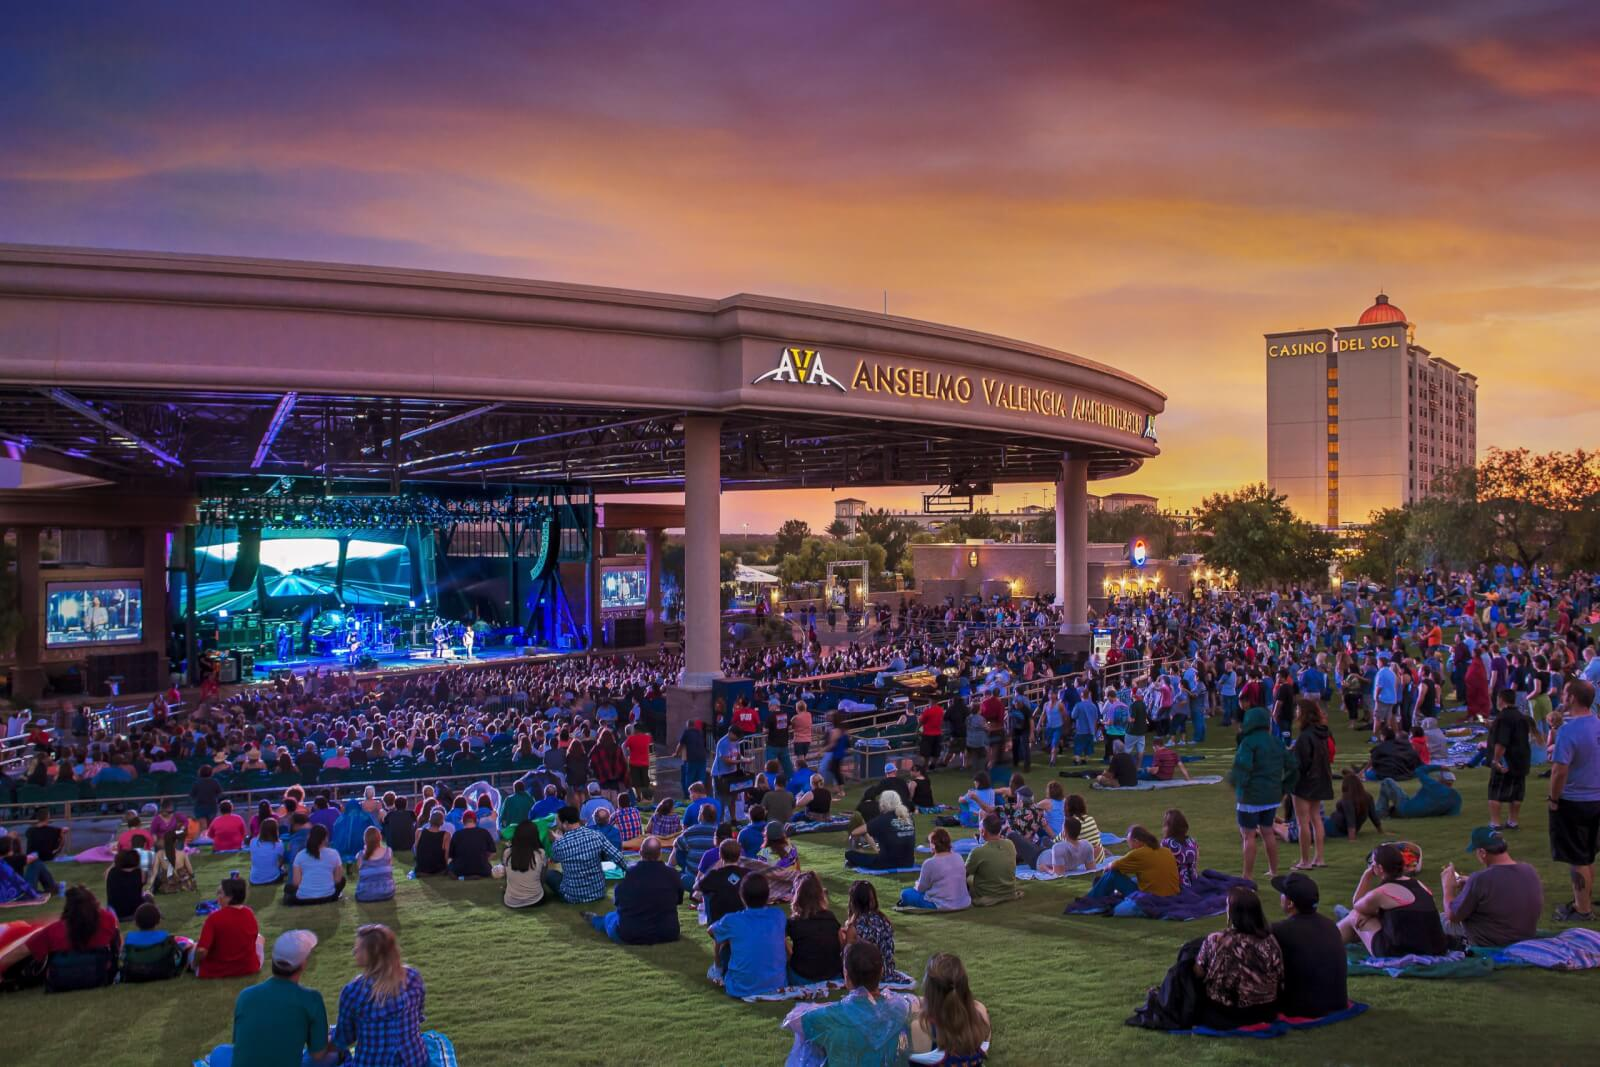 Guests gathered at the Casino Del Sol AVA Amphitheater to watch a show.